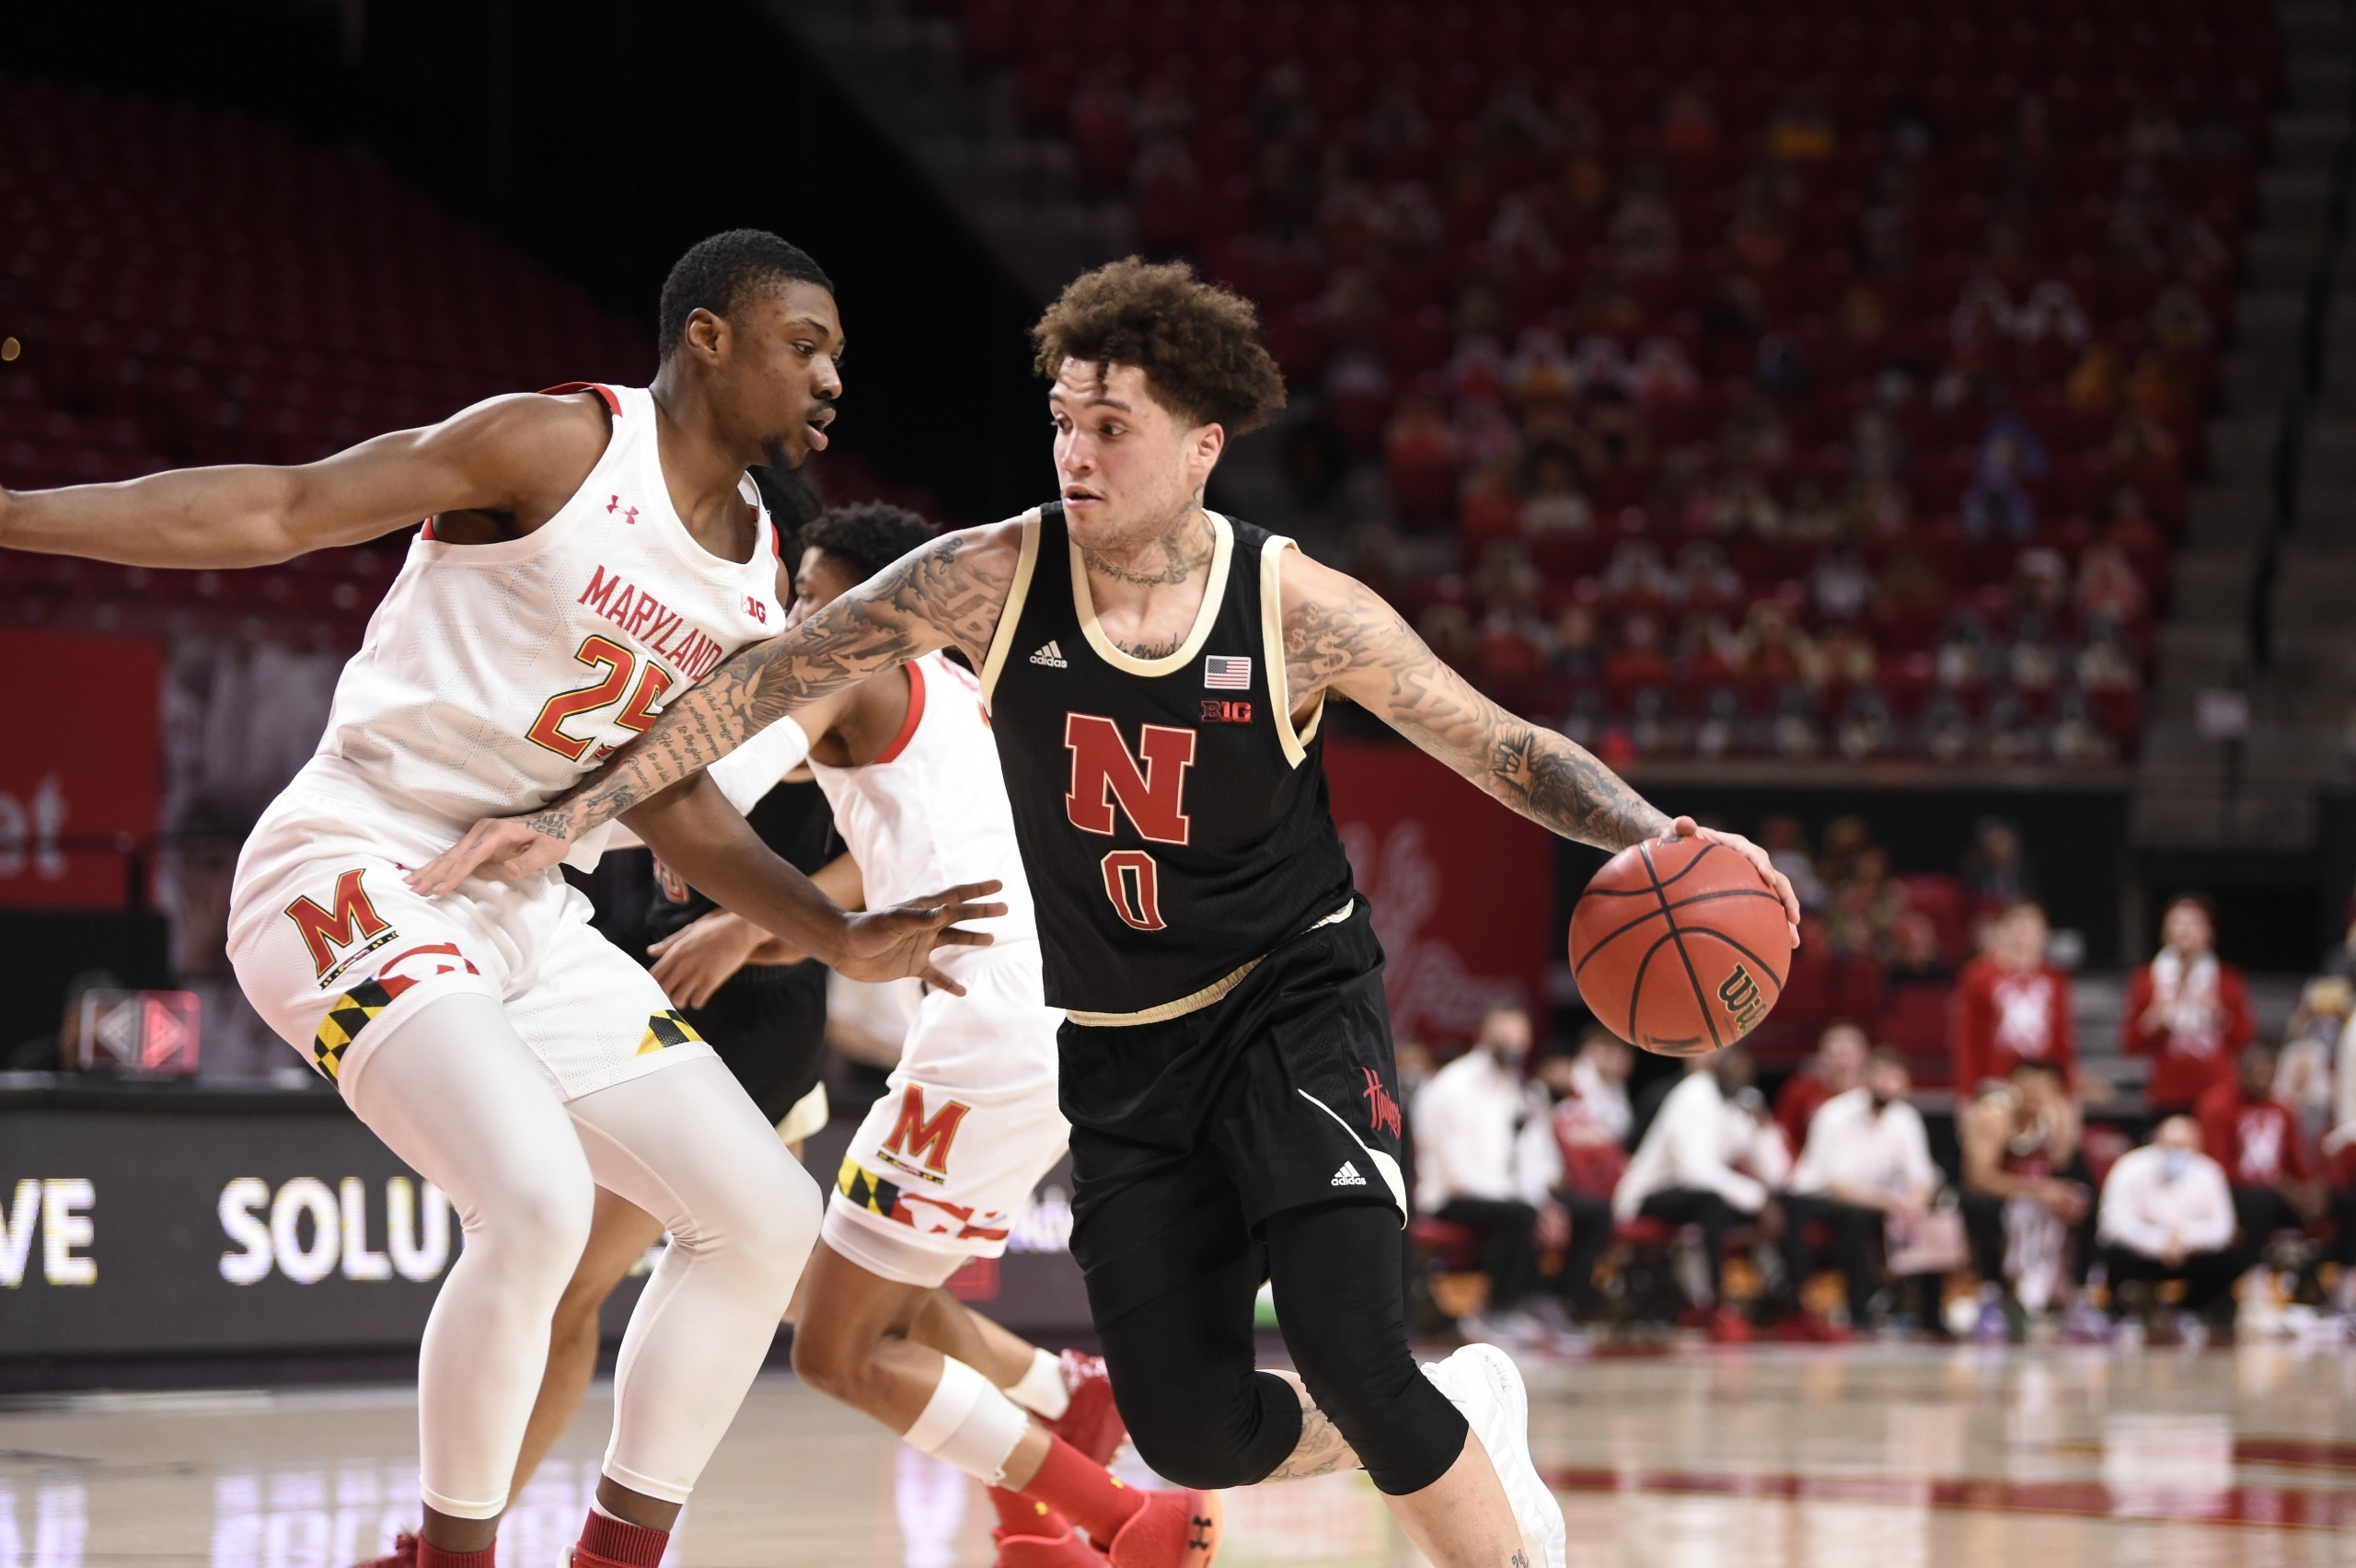 Husker men fall in first of two games at Maryland - KLKN-TV